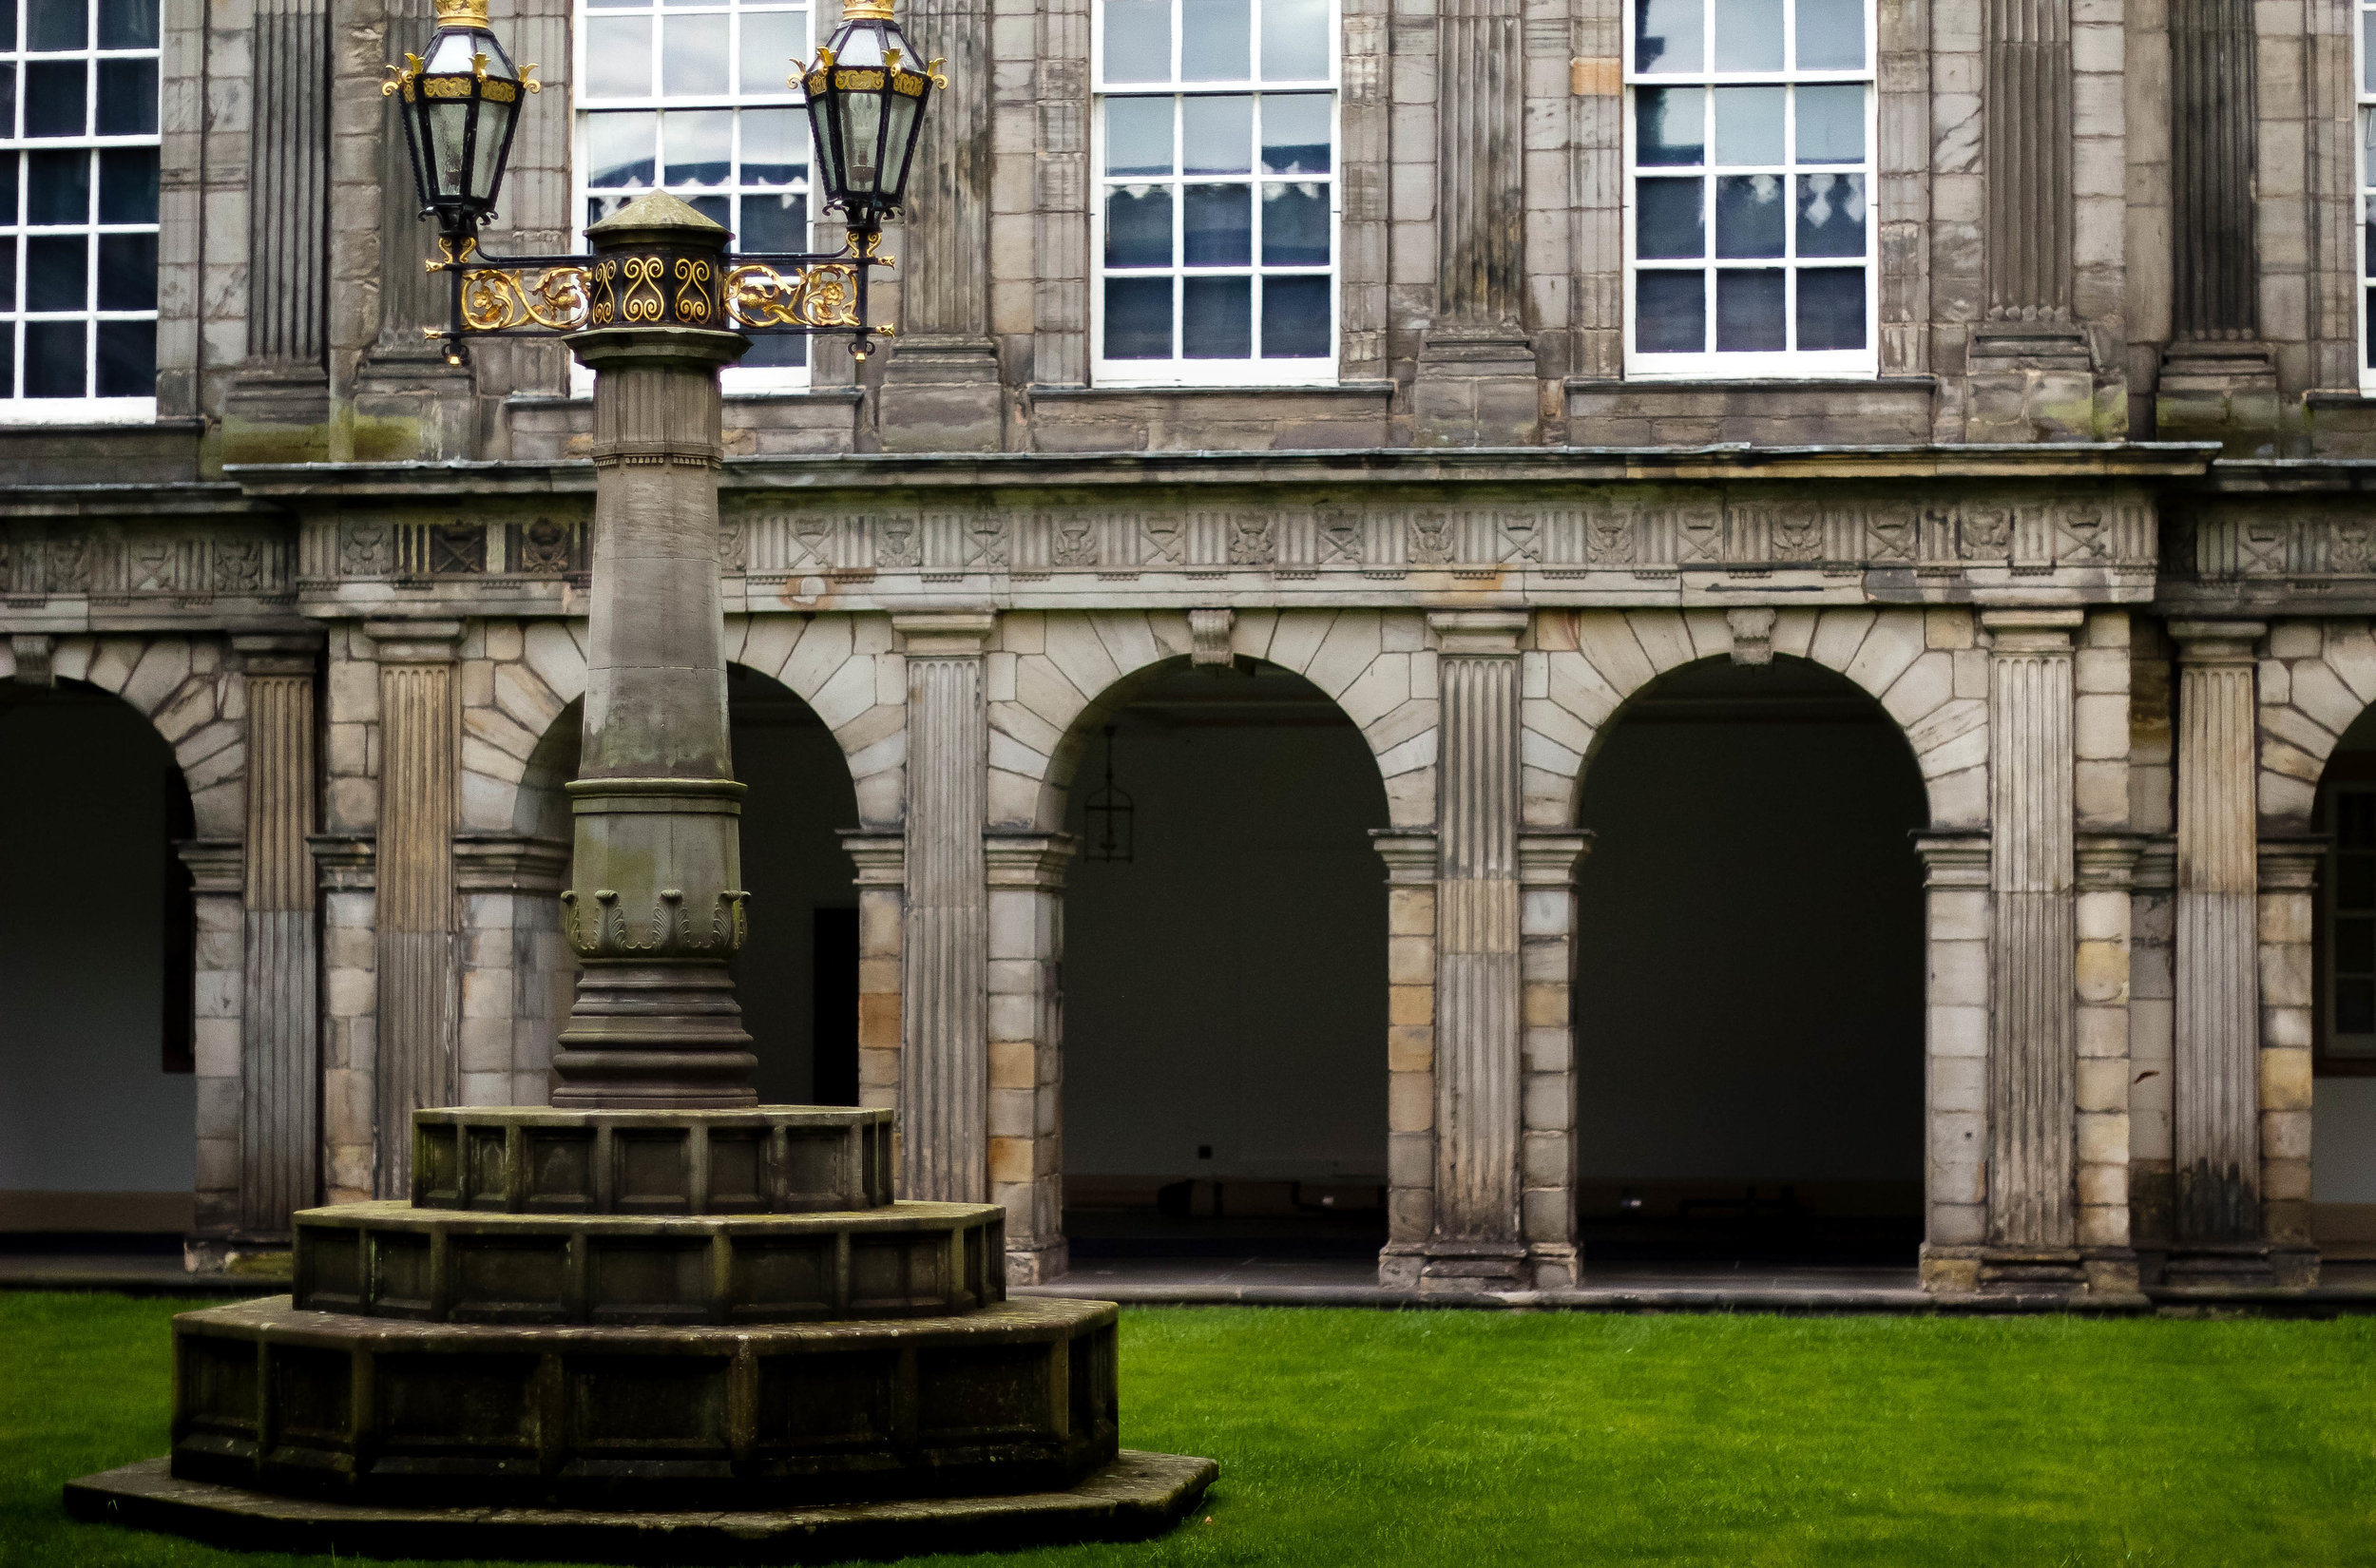 (The courtyard of Holyrood Palace--the only place that permitted photos within the palace)